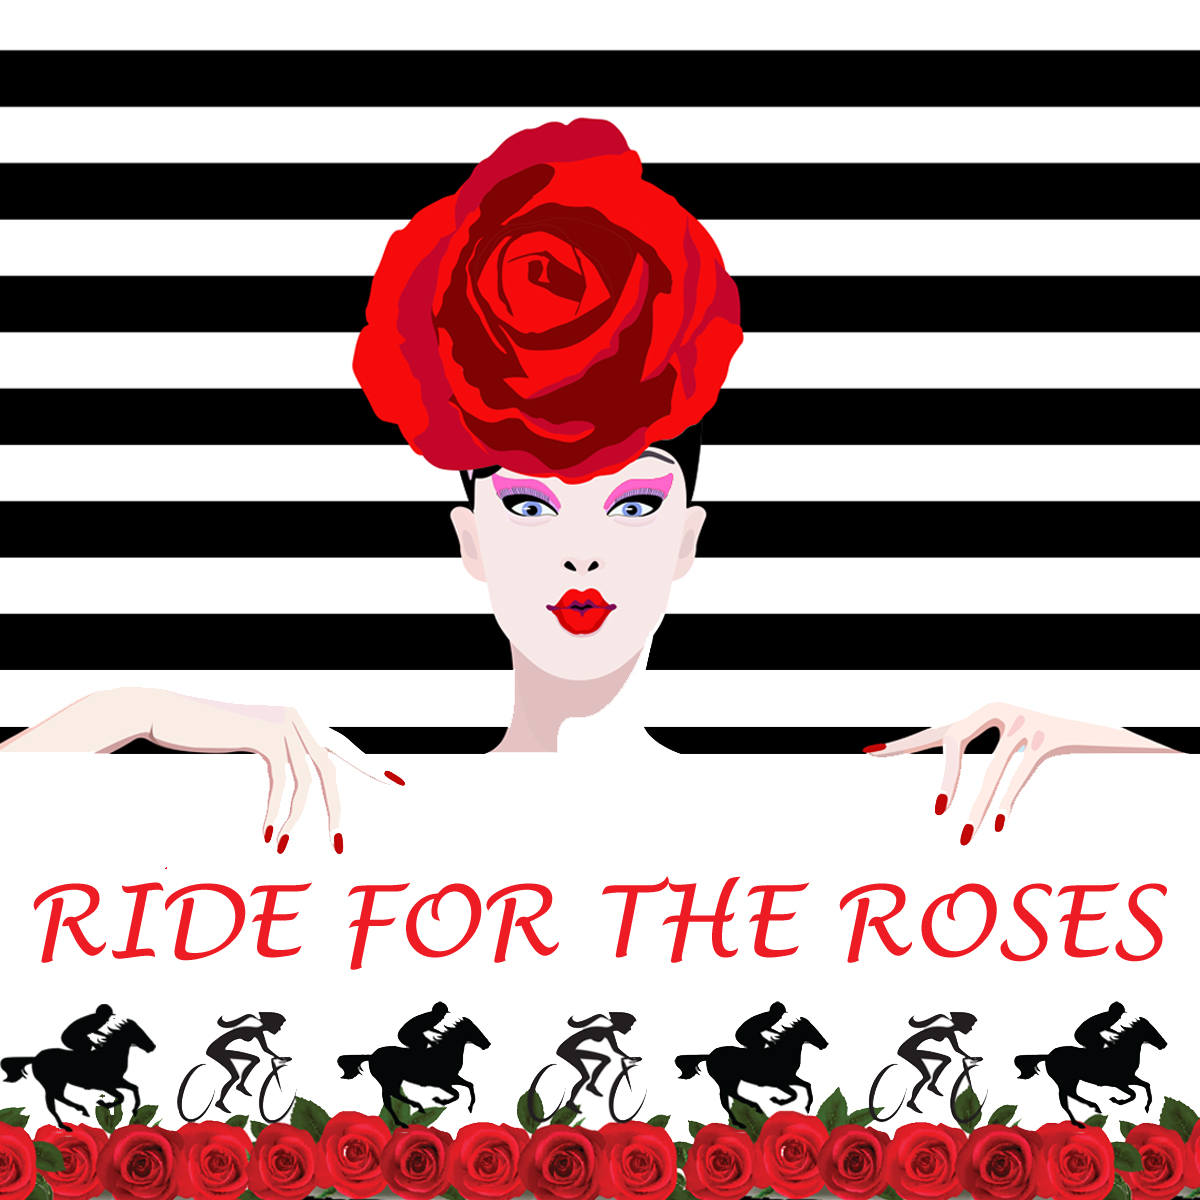 Little Red Riding Hood Cycling Ride 2019, Ride For The Roses